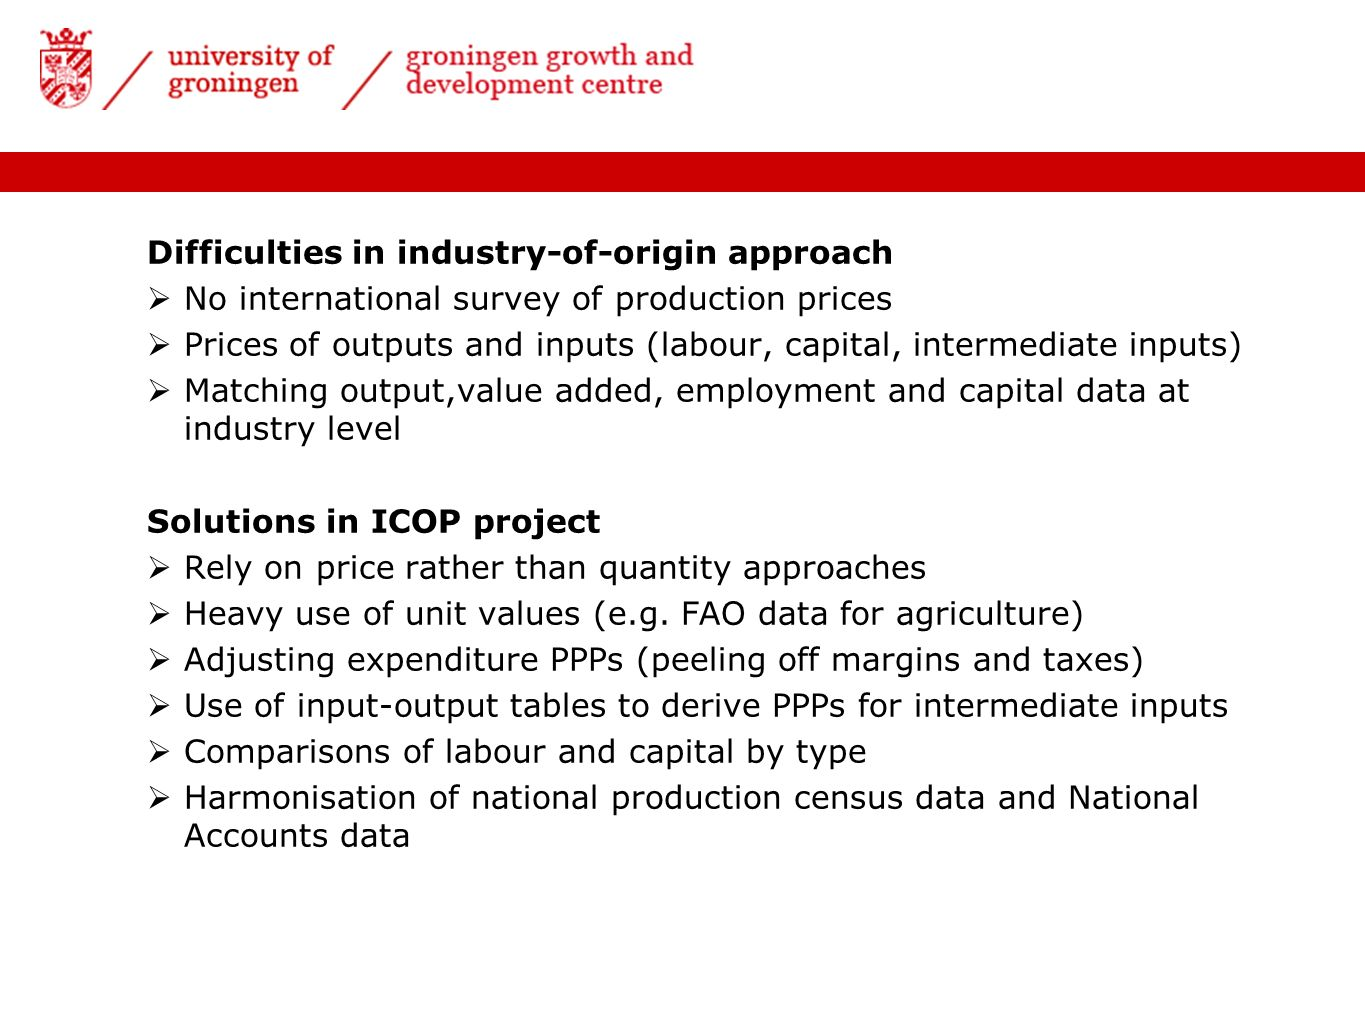 Difficulties in industry-of-origin approach No international survey of production prices Prices of outputs and inputs (labour, capital, intermediate inputs) Matching output,value added, employment and capital data at industry level Solutions in ICOP project Rely on price rather than quantity approaches Heavy use of unit values (e.g.